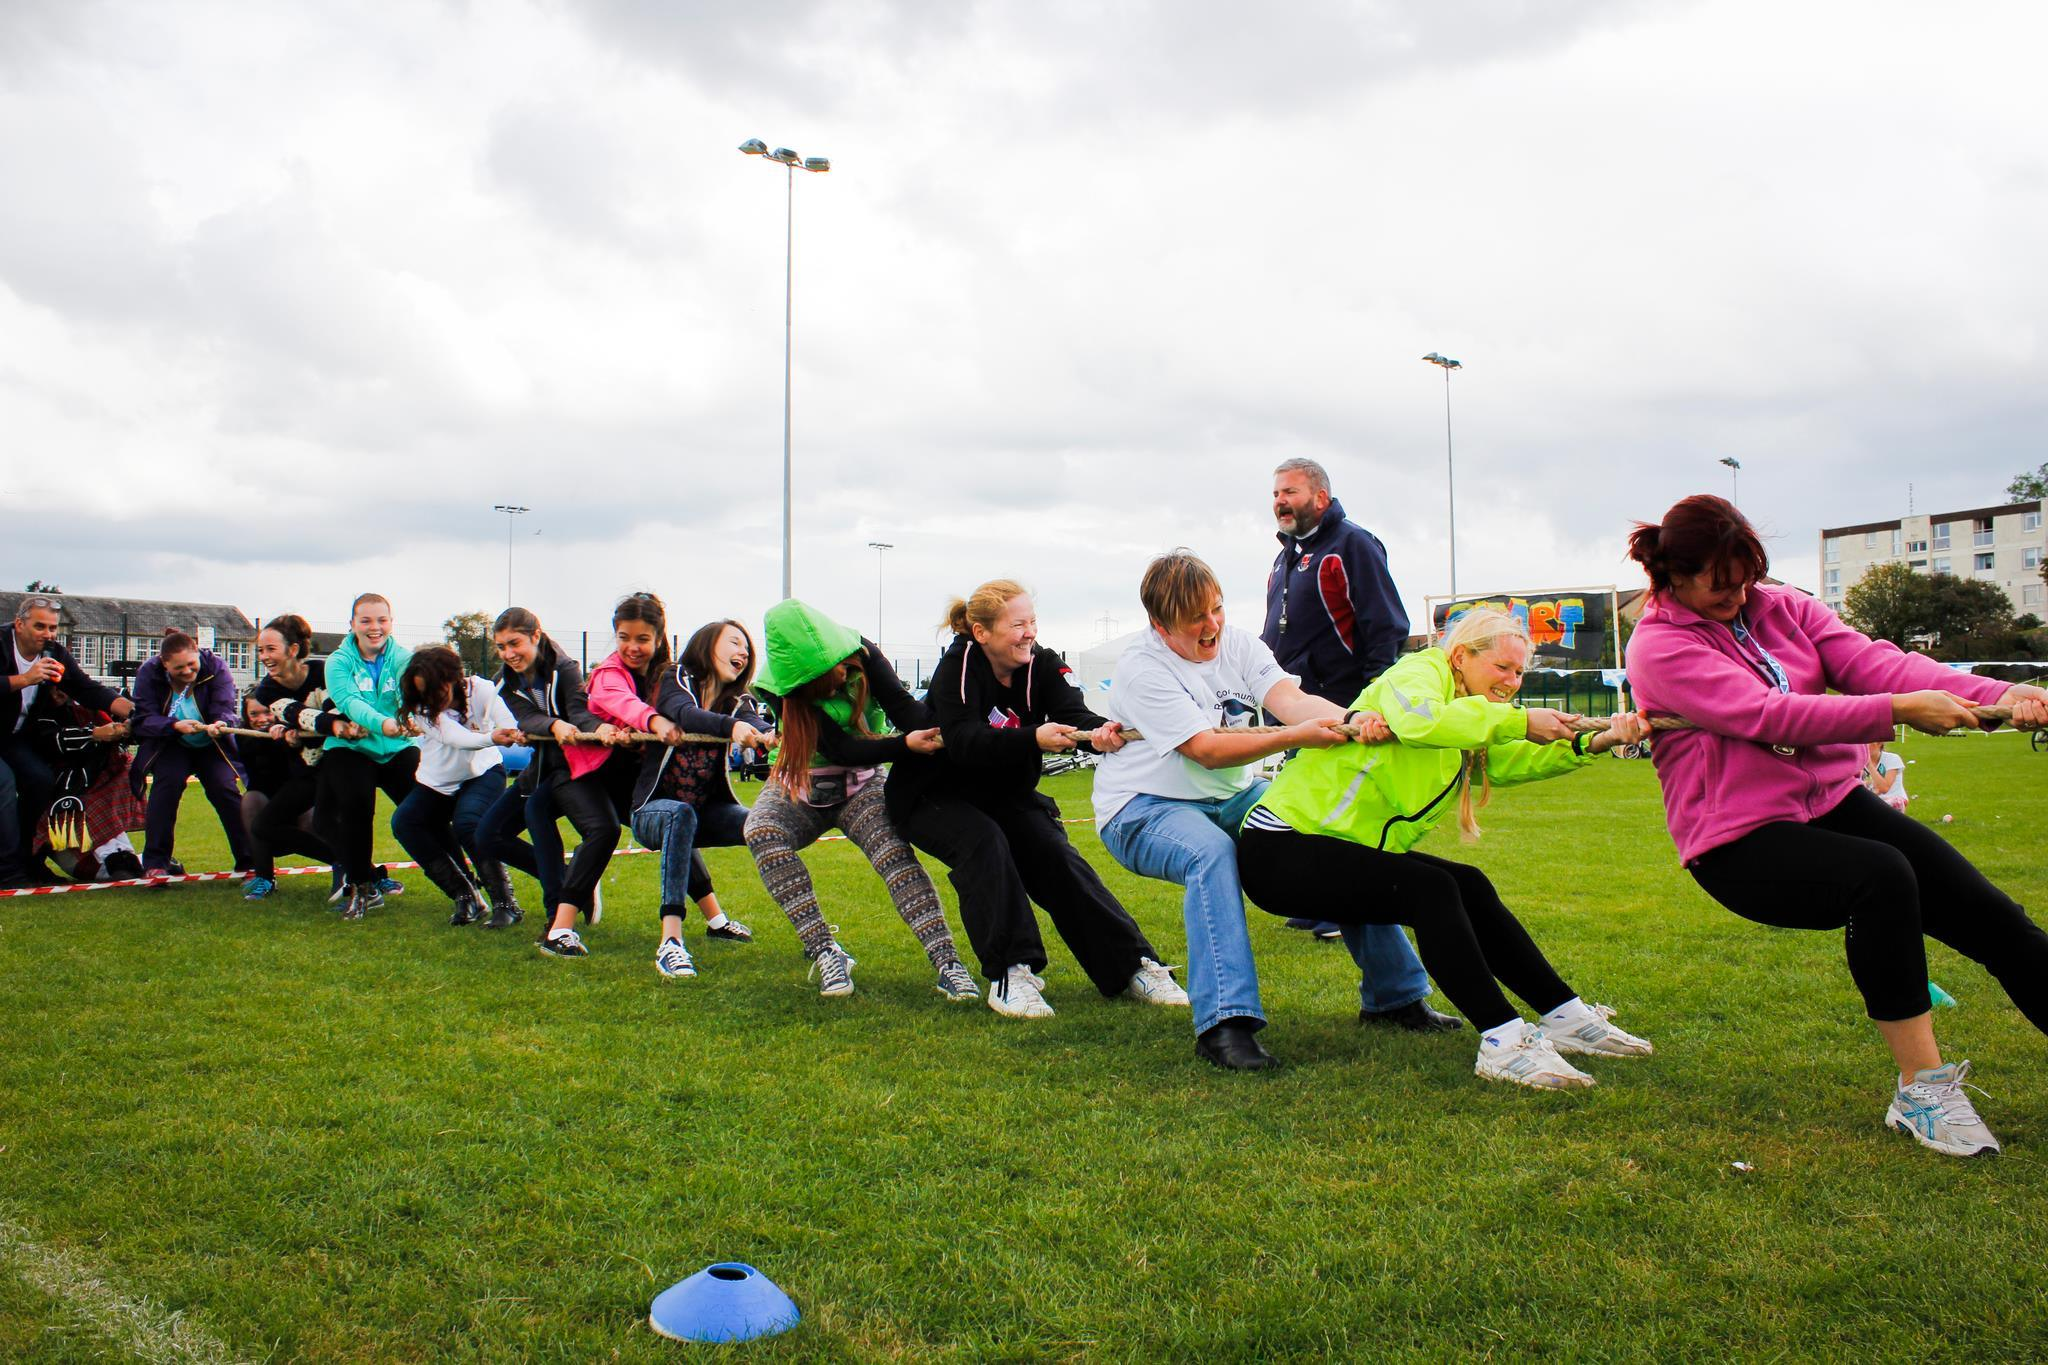 Event of the week is Ralston Community Games